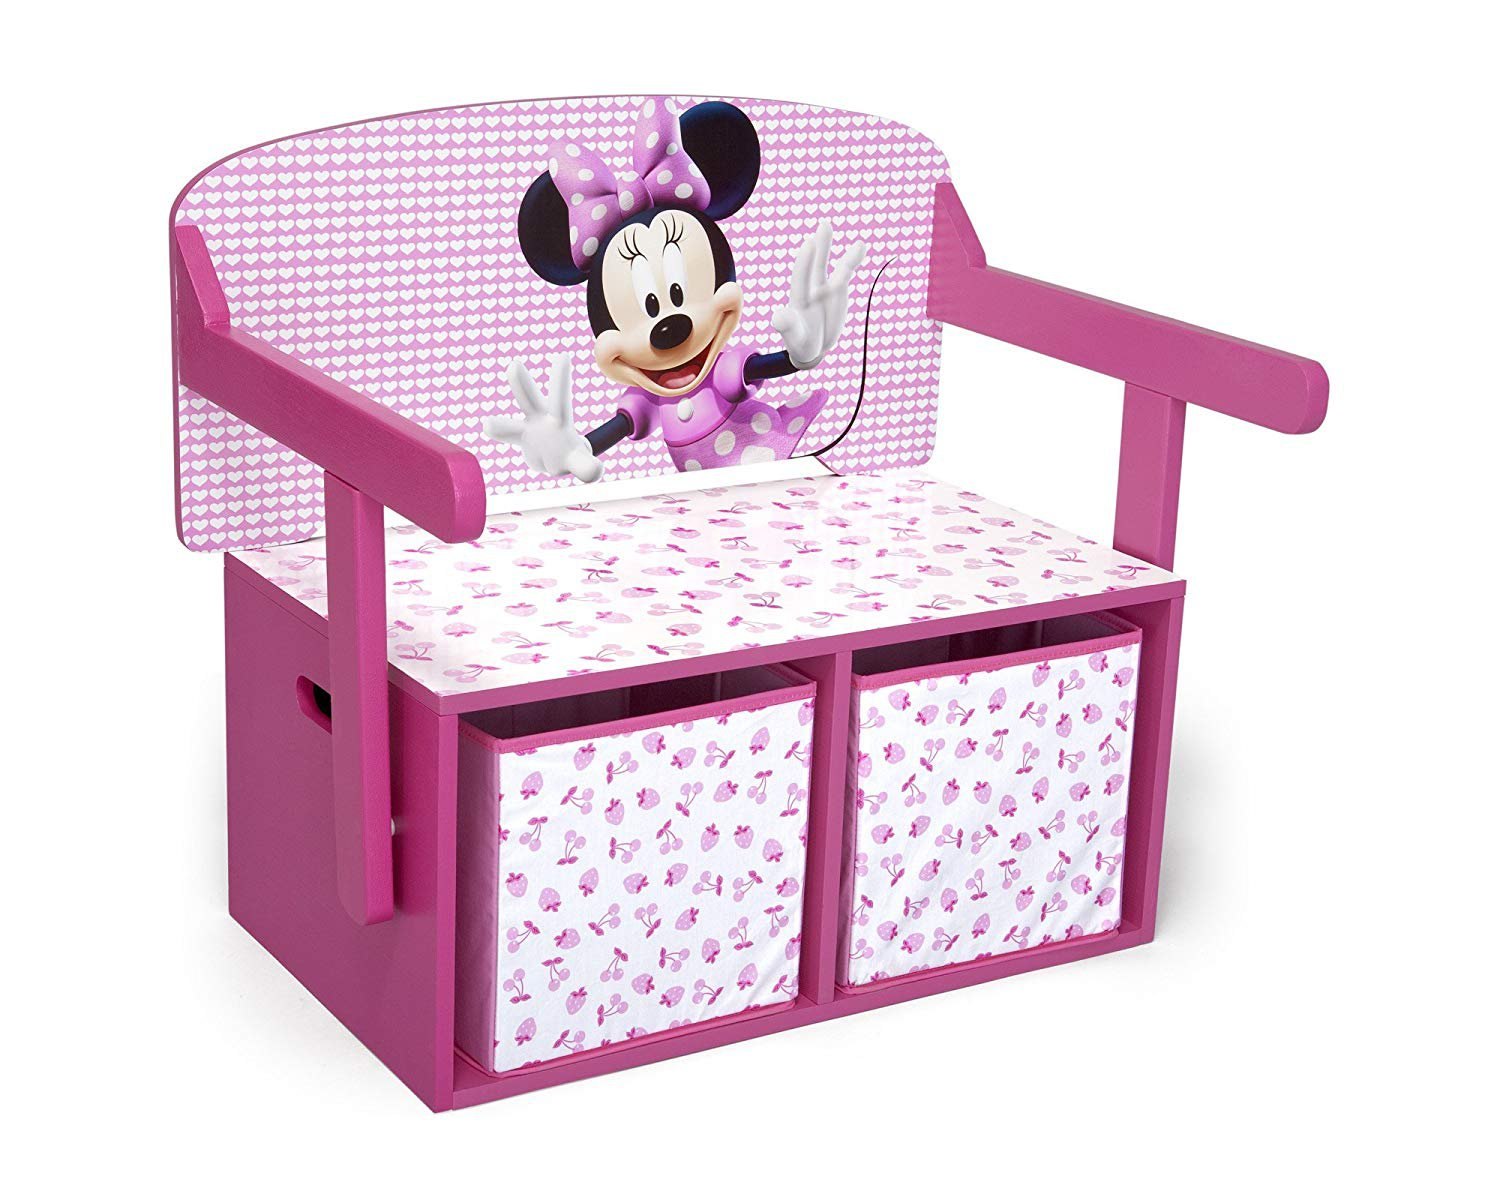 Disney Minnie Mouse 3 in 1 Storage Bench and Desk